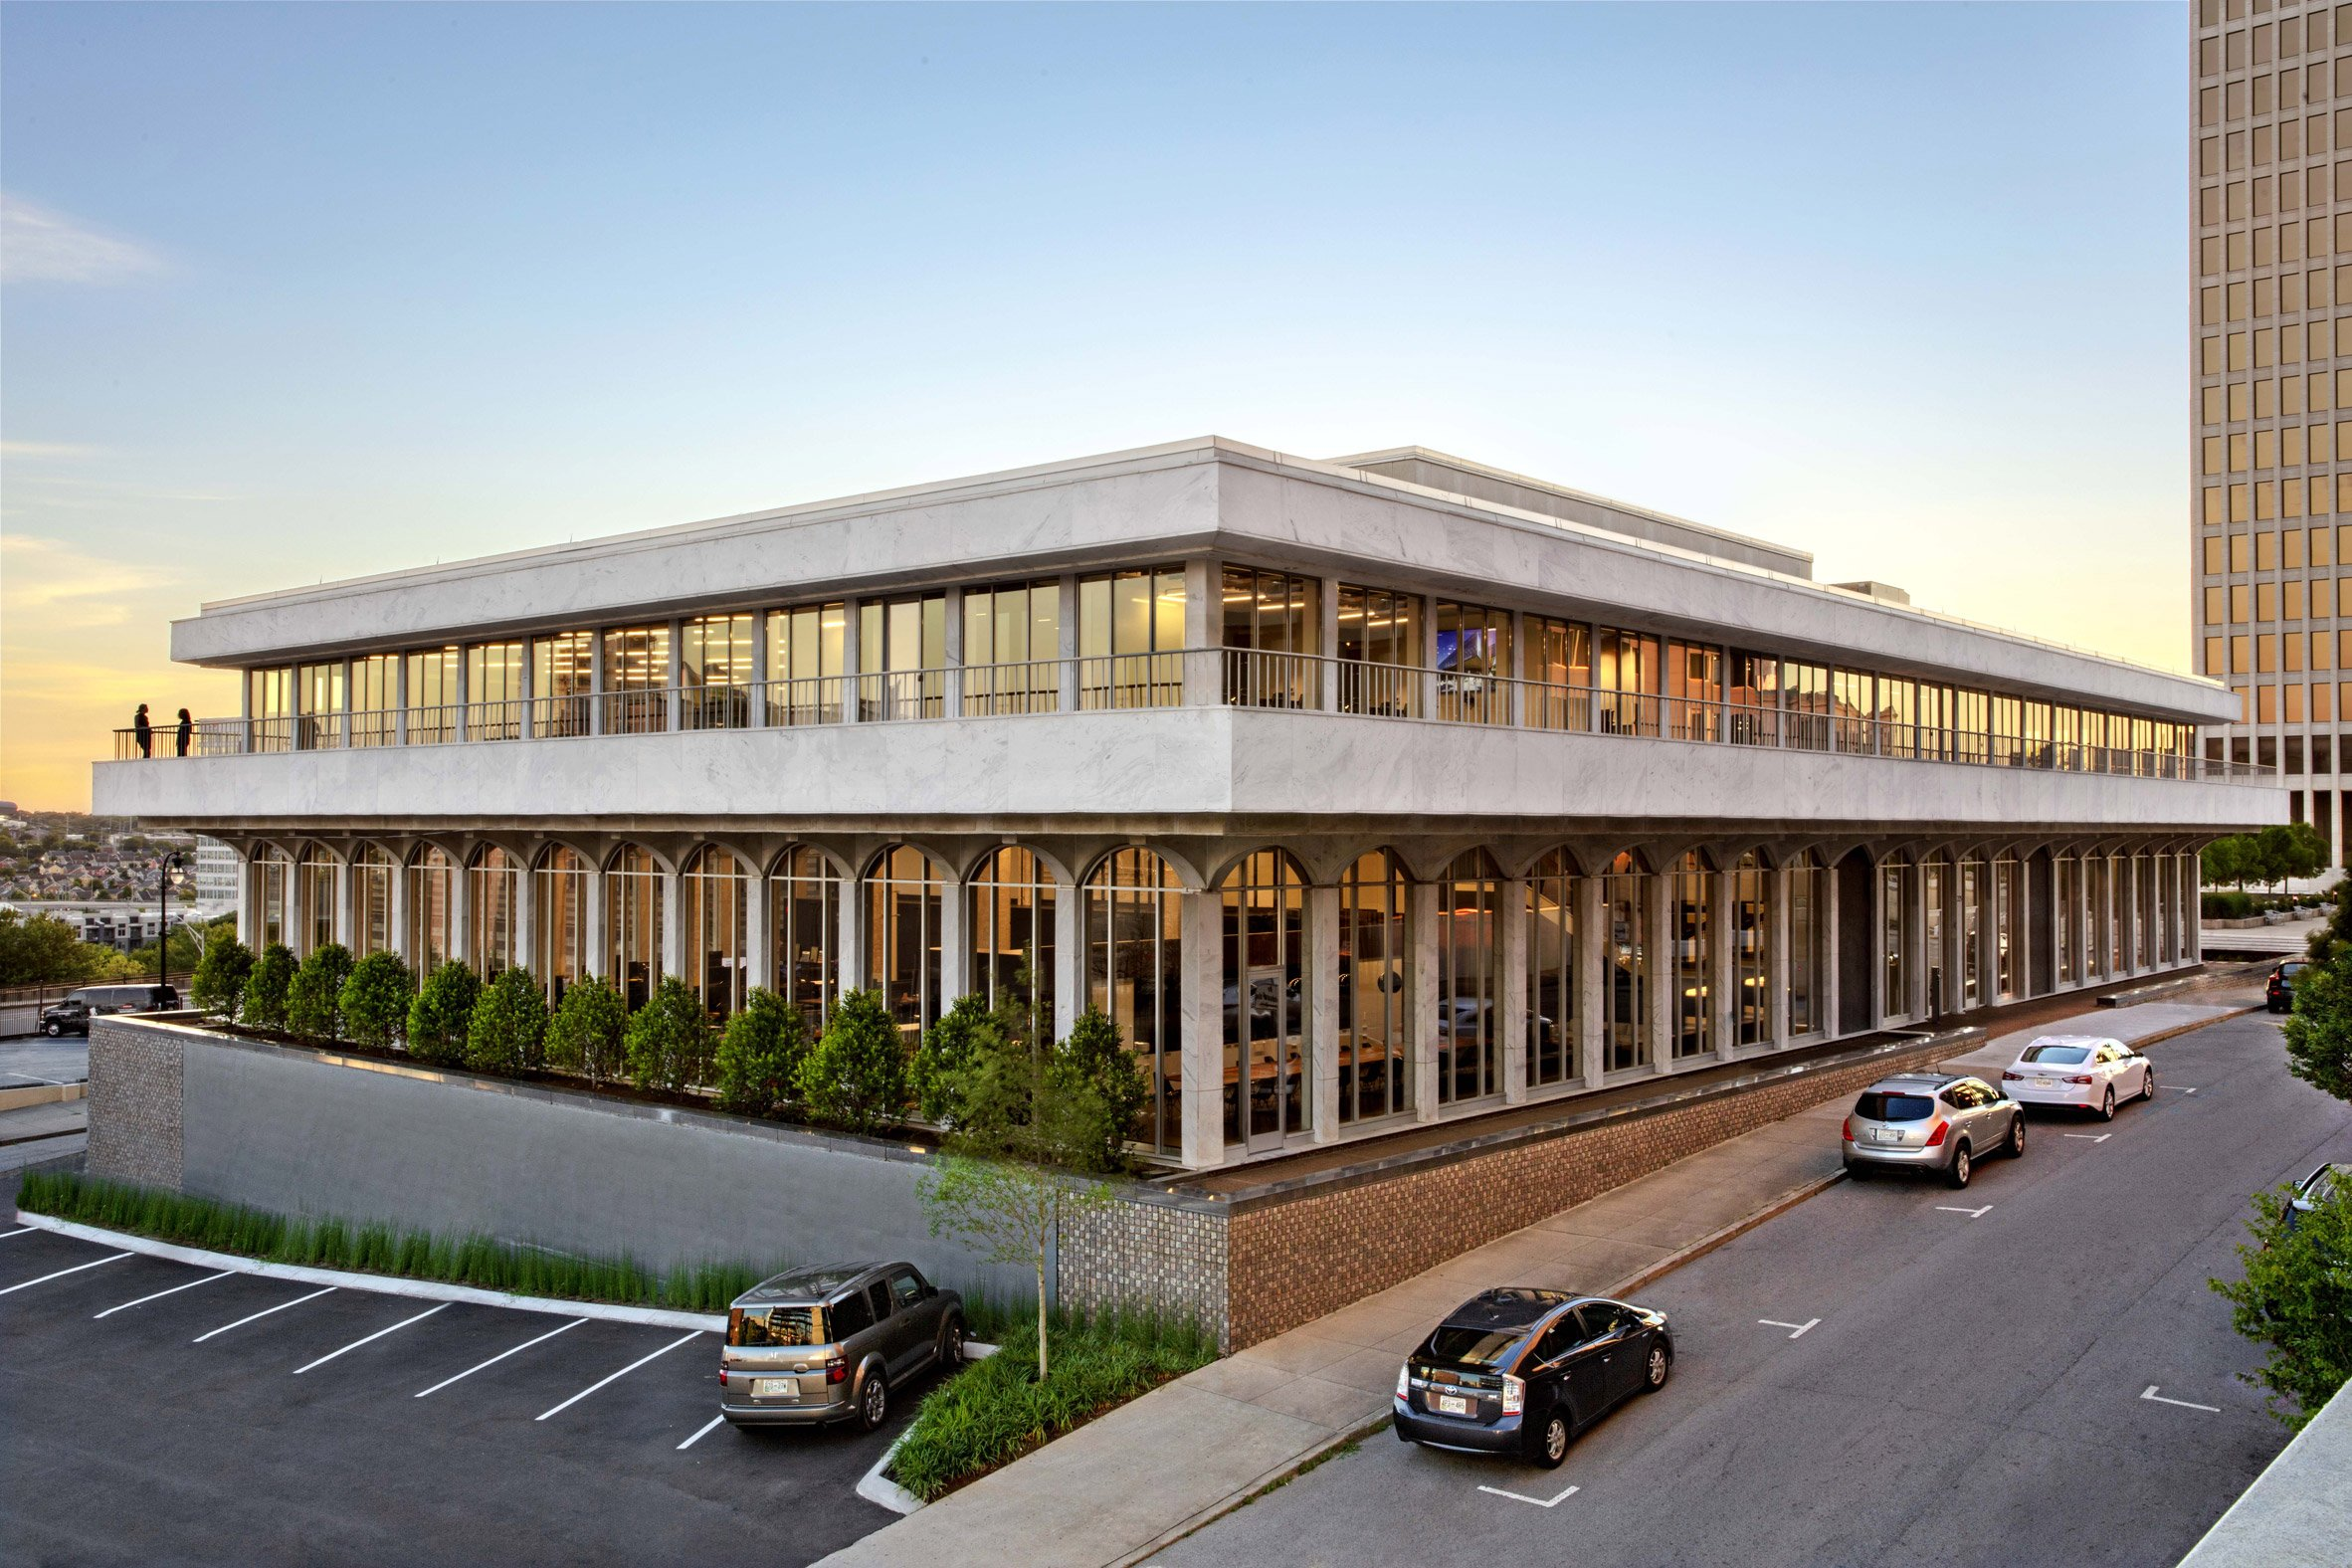 Hastings Architecture designed the project